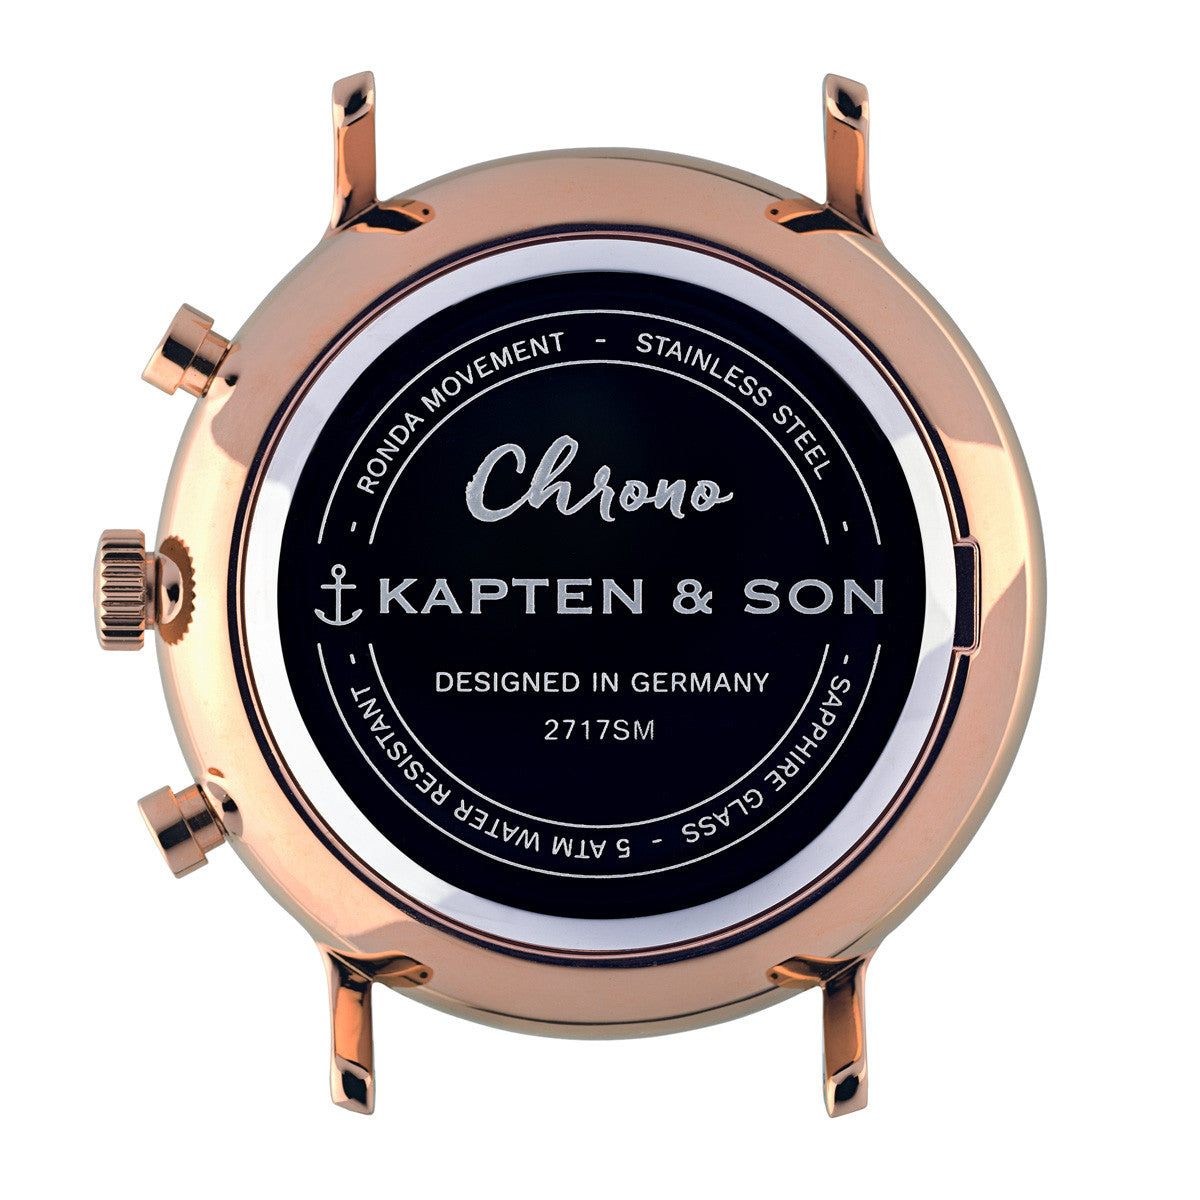 Chrono steel - Kapten & Son - Japan